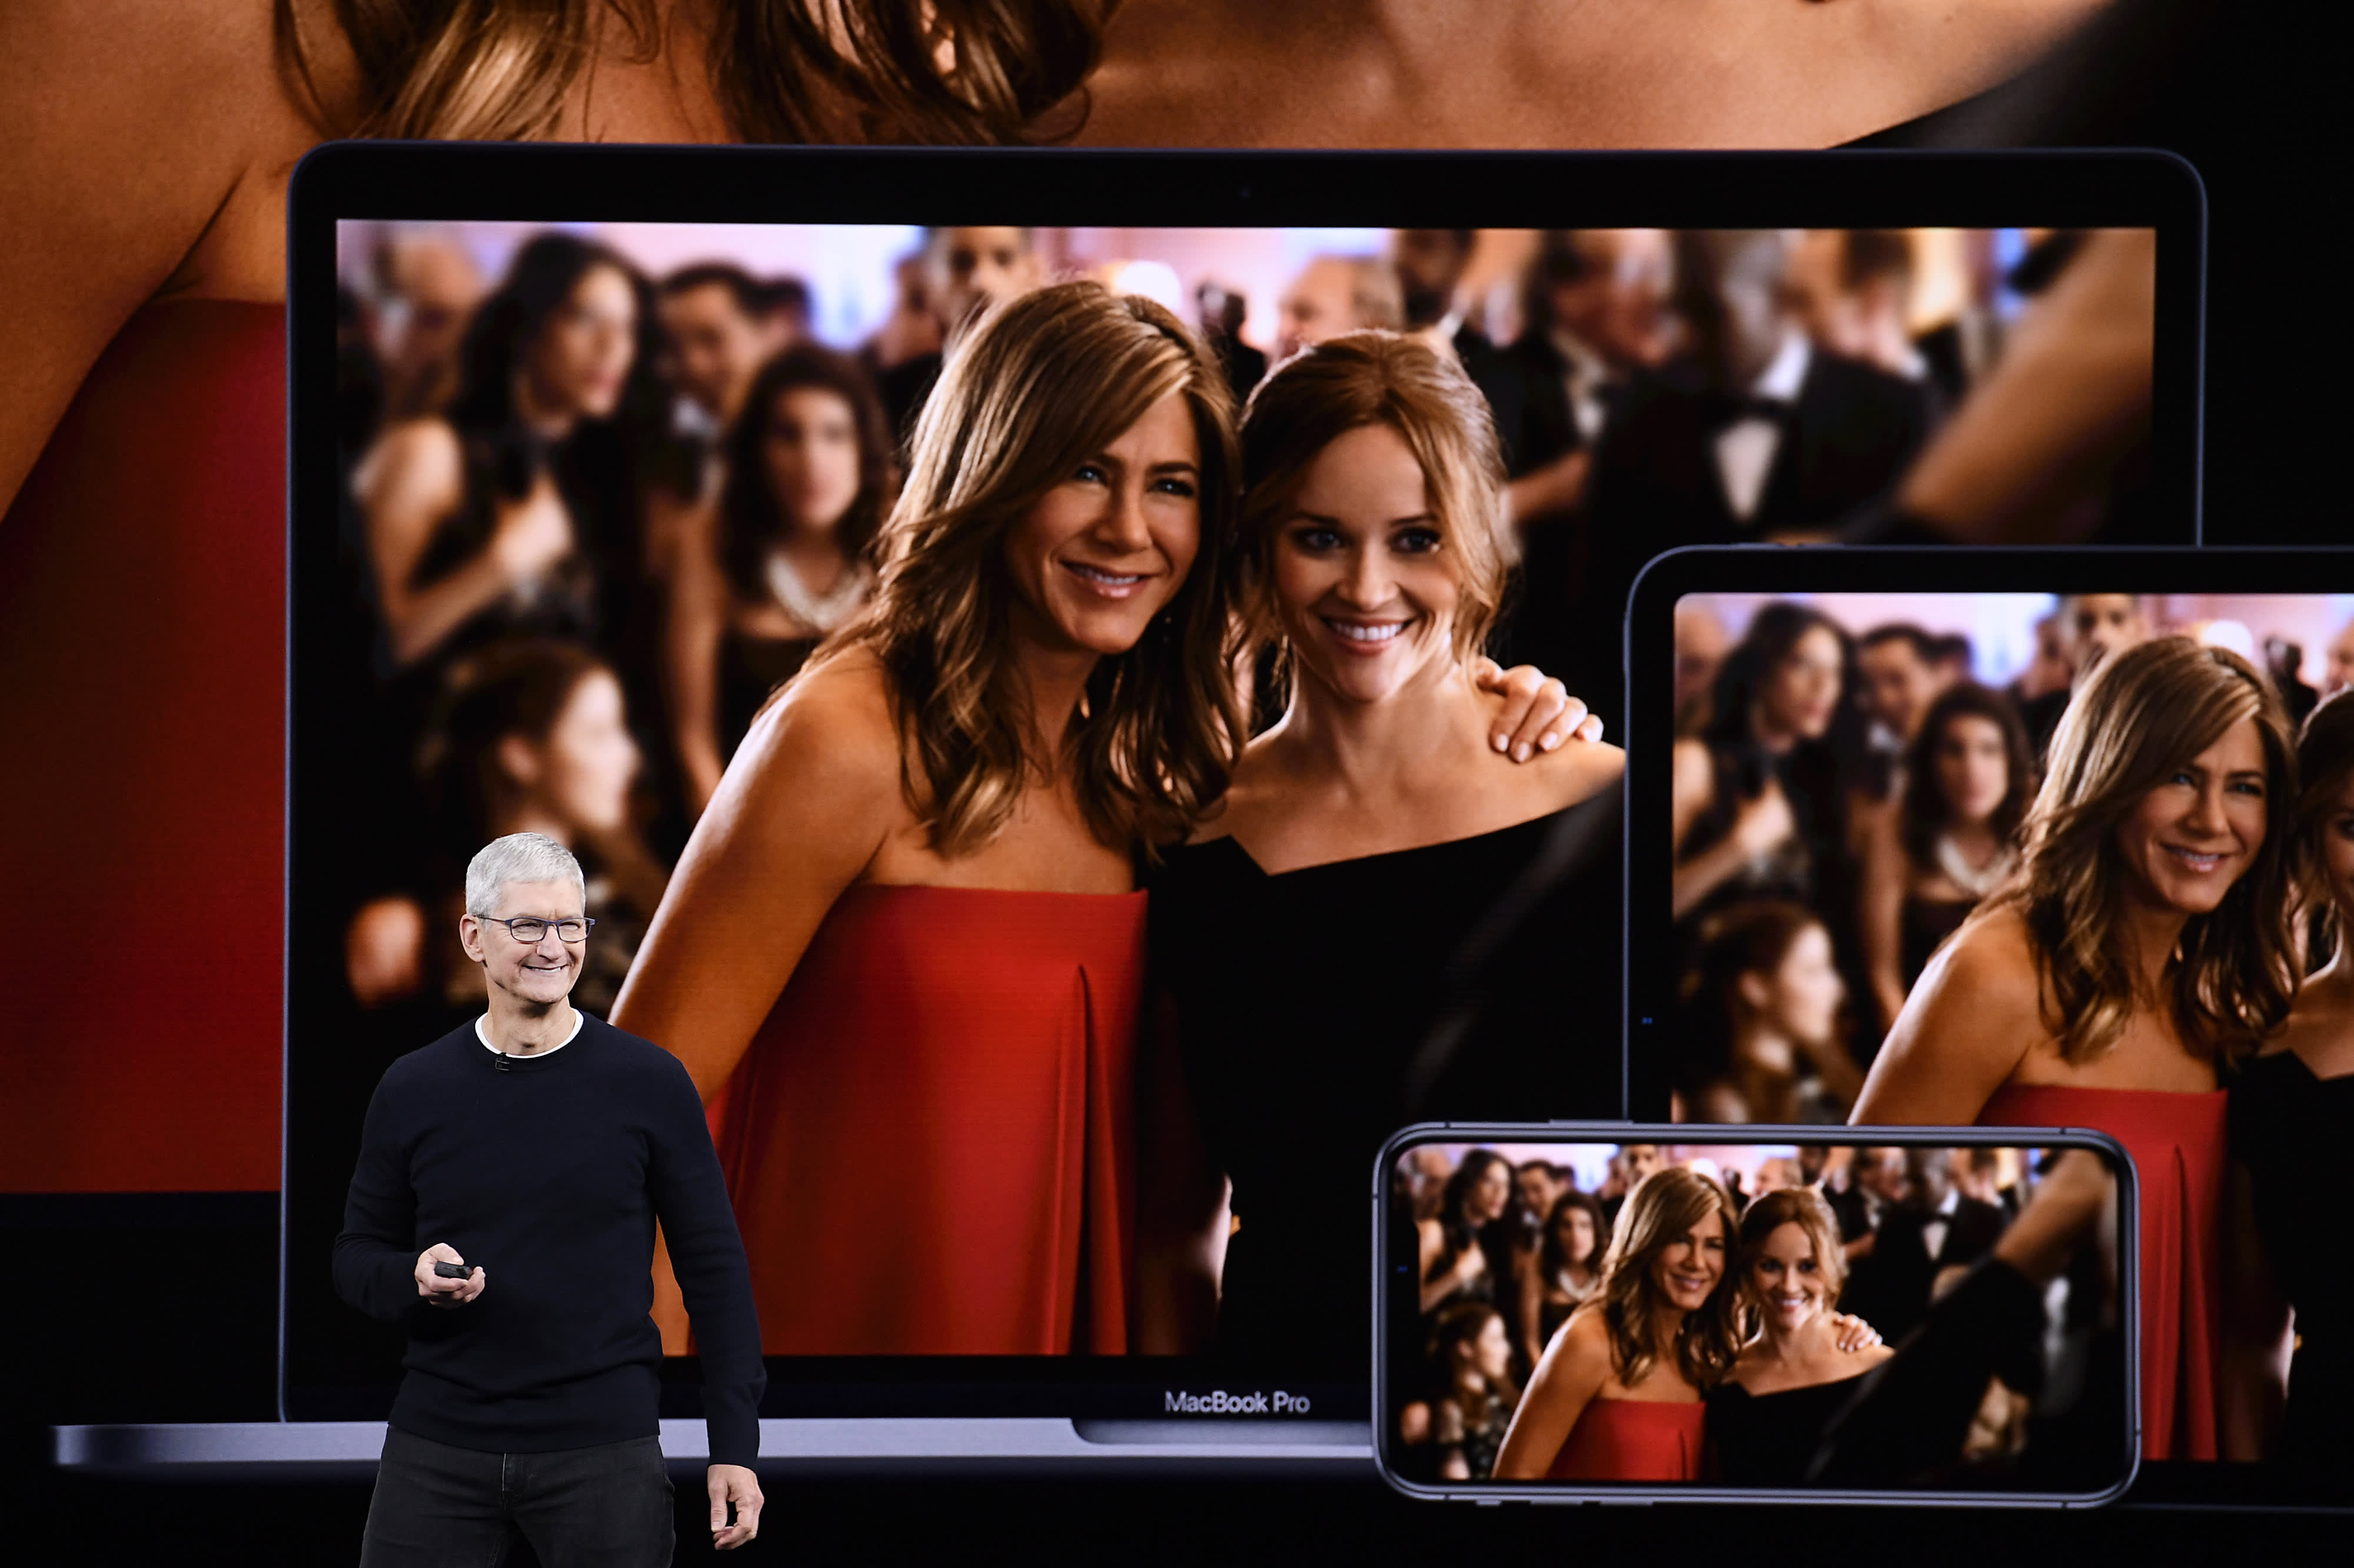 Apple TV+ will rack up over 100 million subscribers in its first year, Barclays predicts